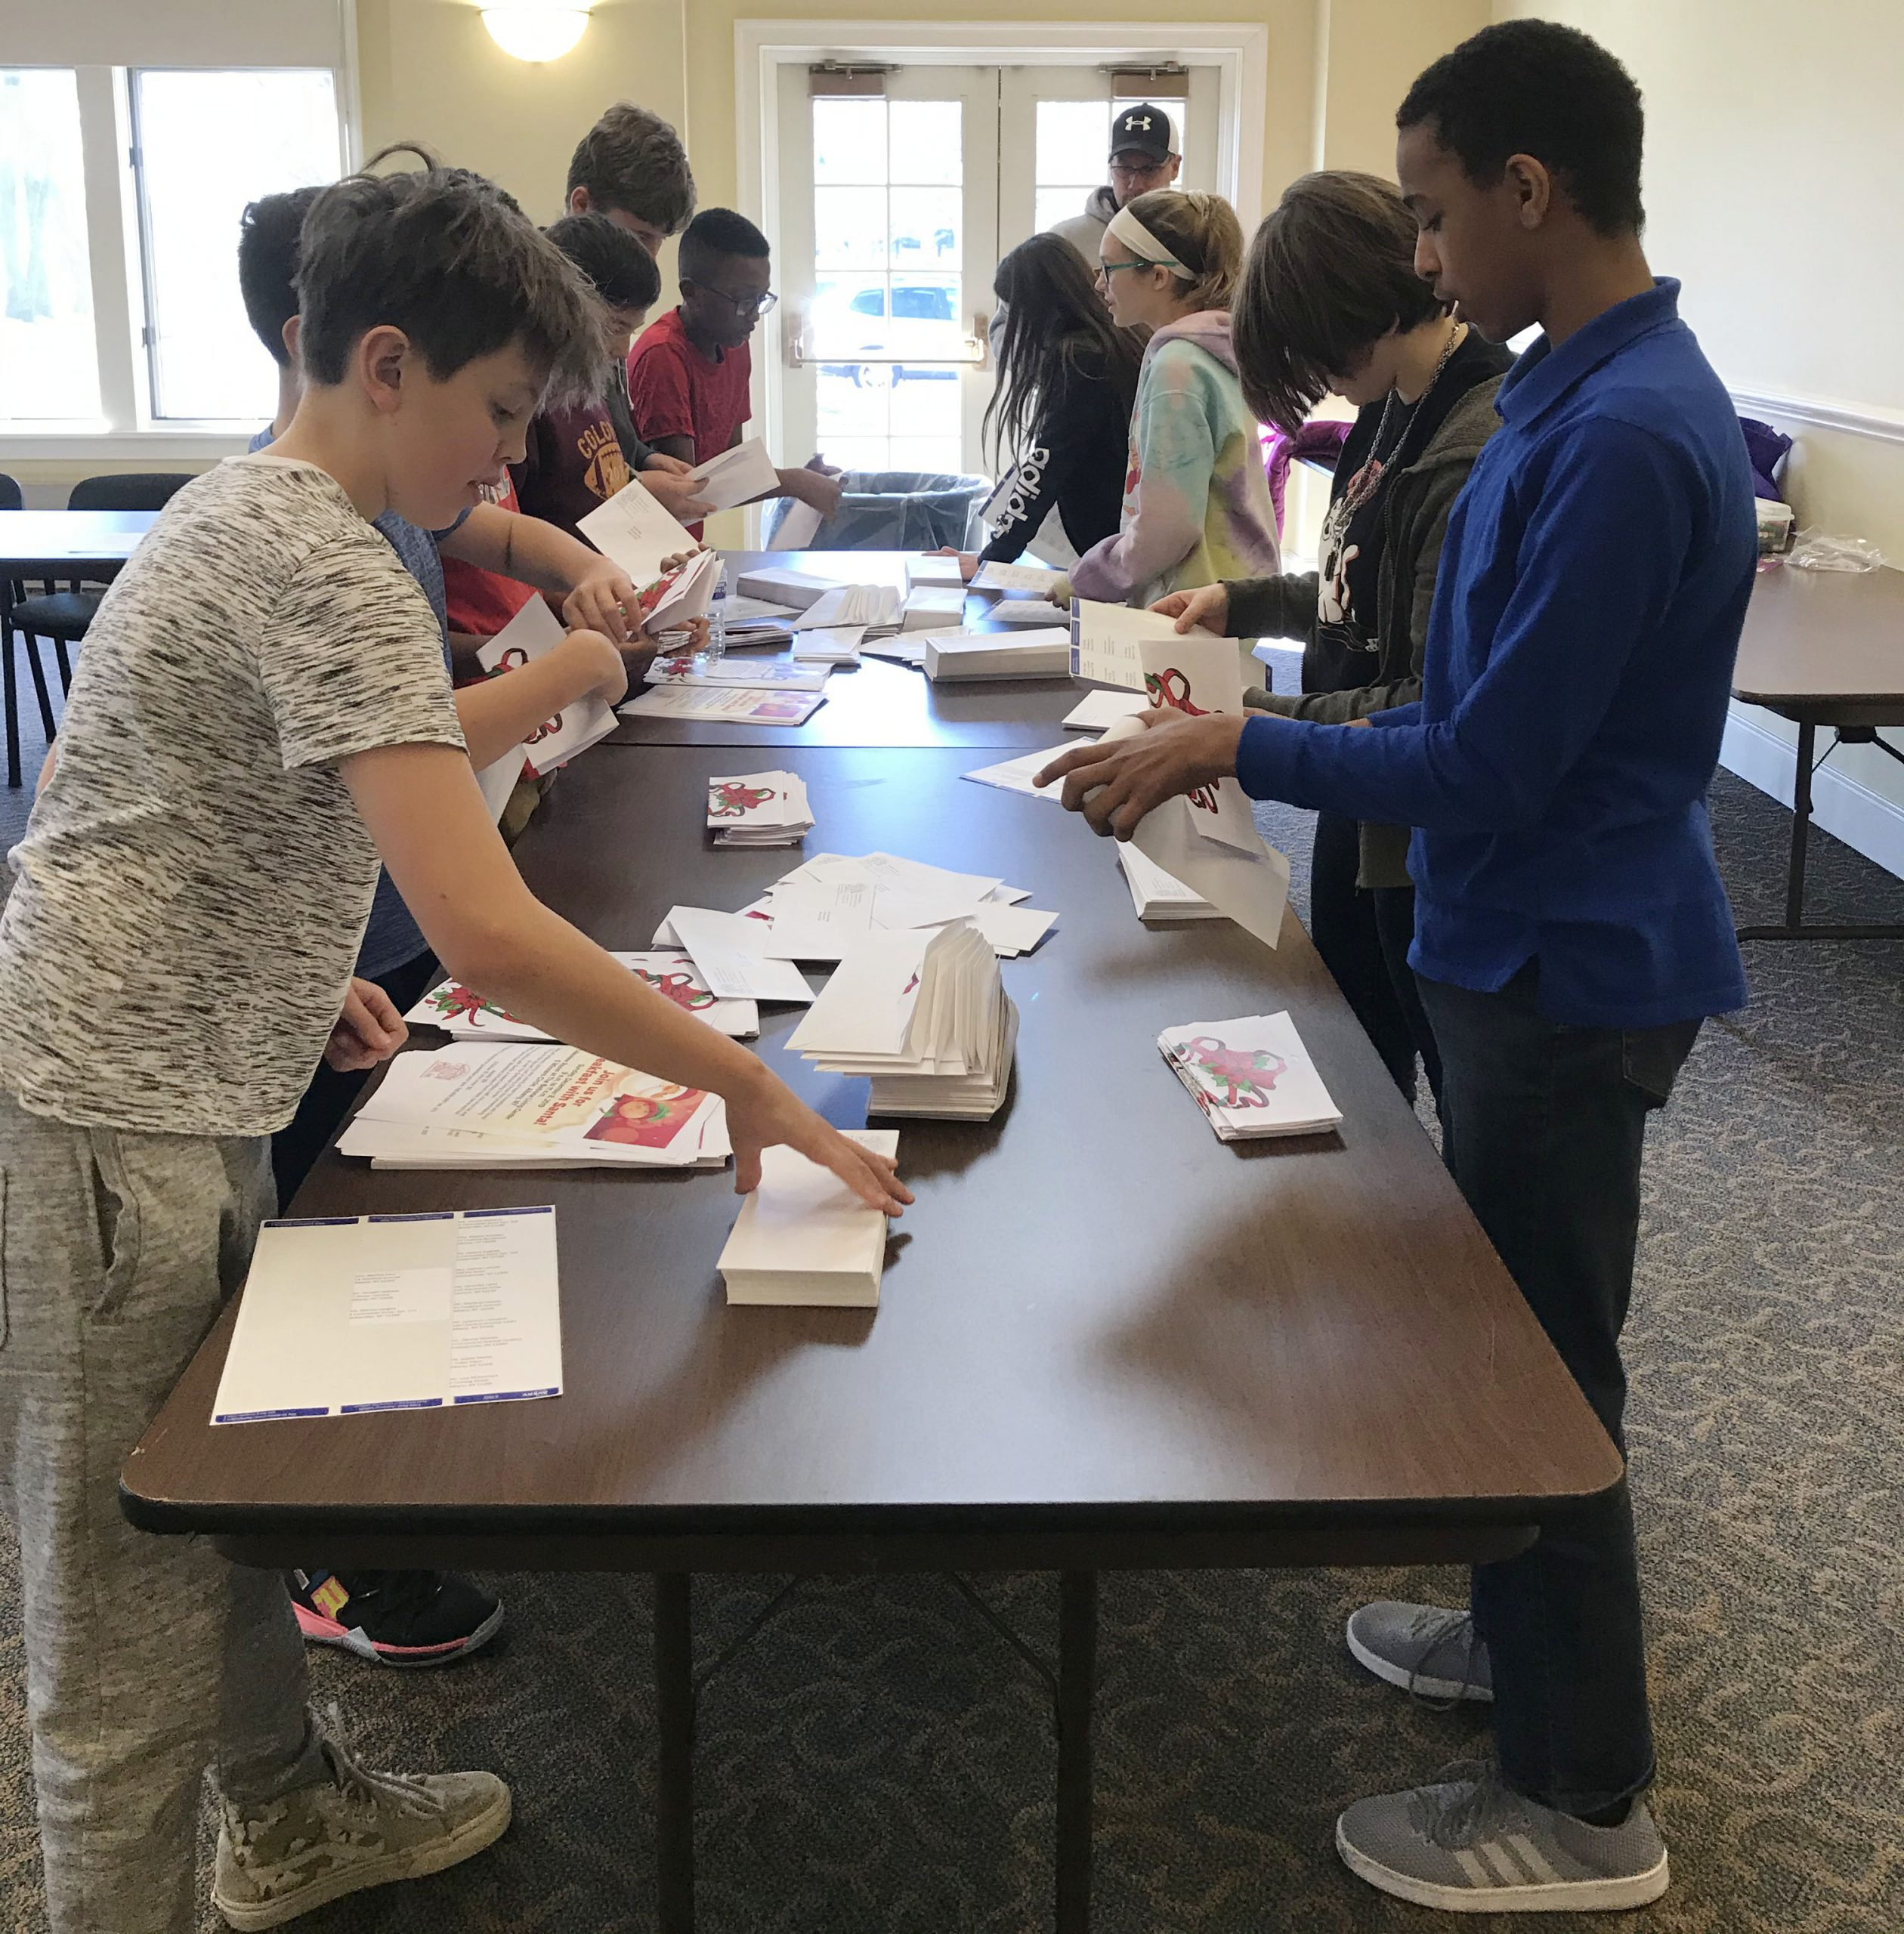 students sort mail at a table